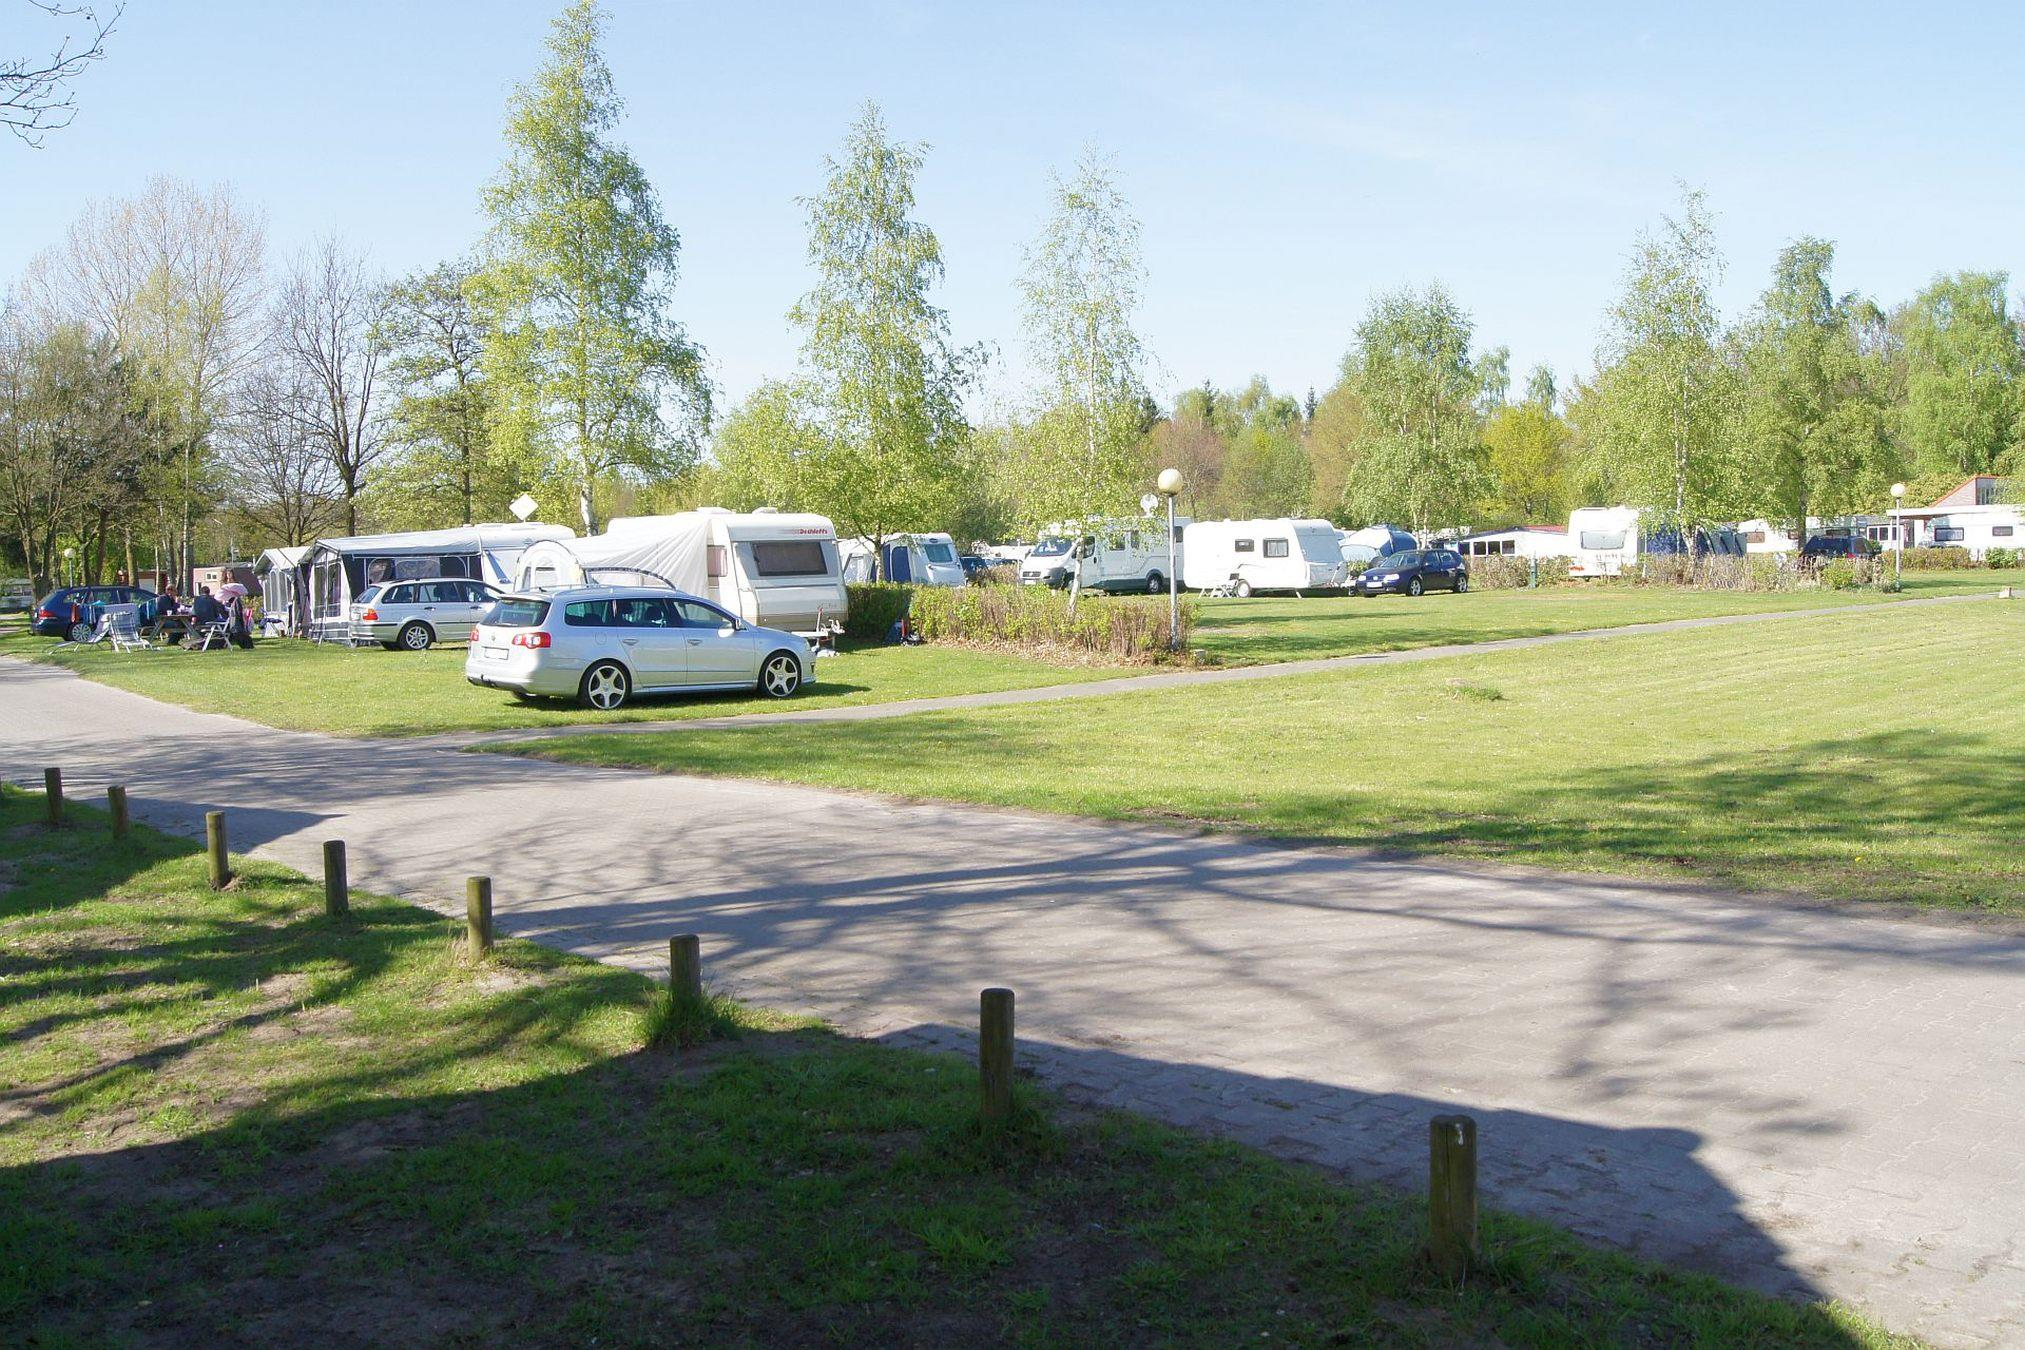 Establishment Euregio camping De Twentse Es - Enschede